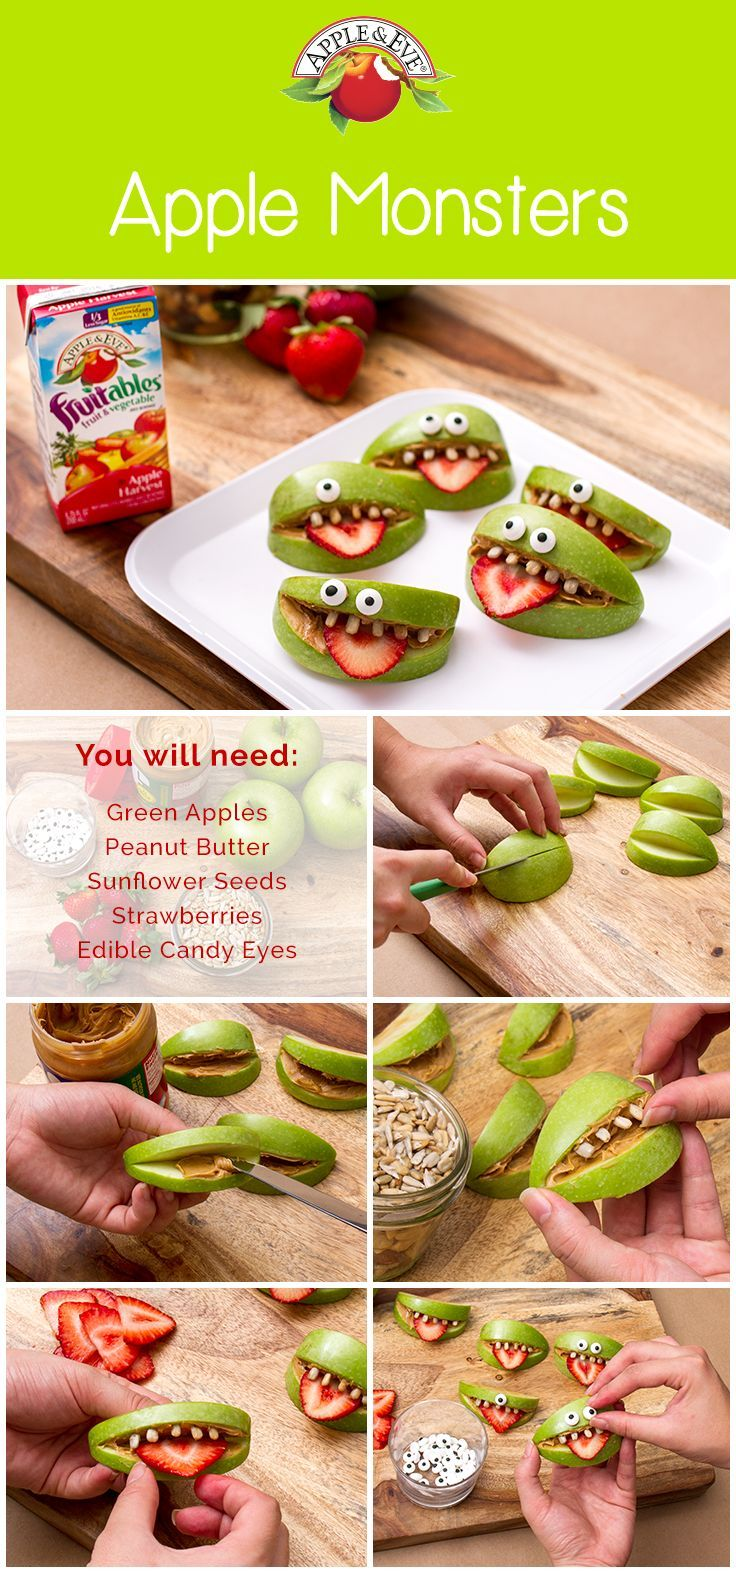 These little monsters are so cute we could eat them up! If they don't get us first... ;) Monster themed birthday party